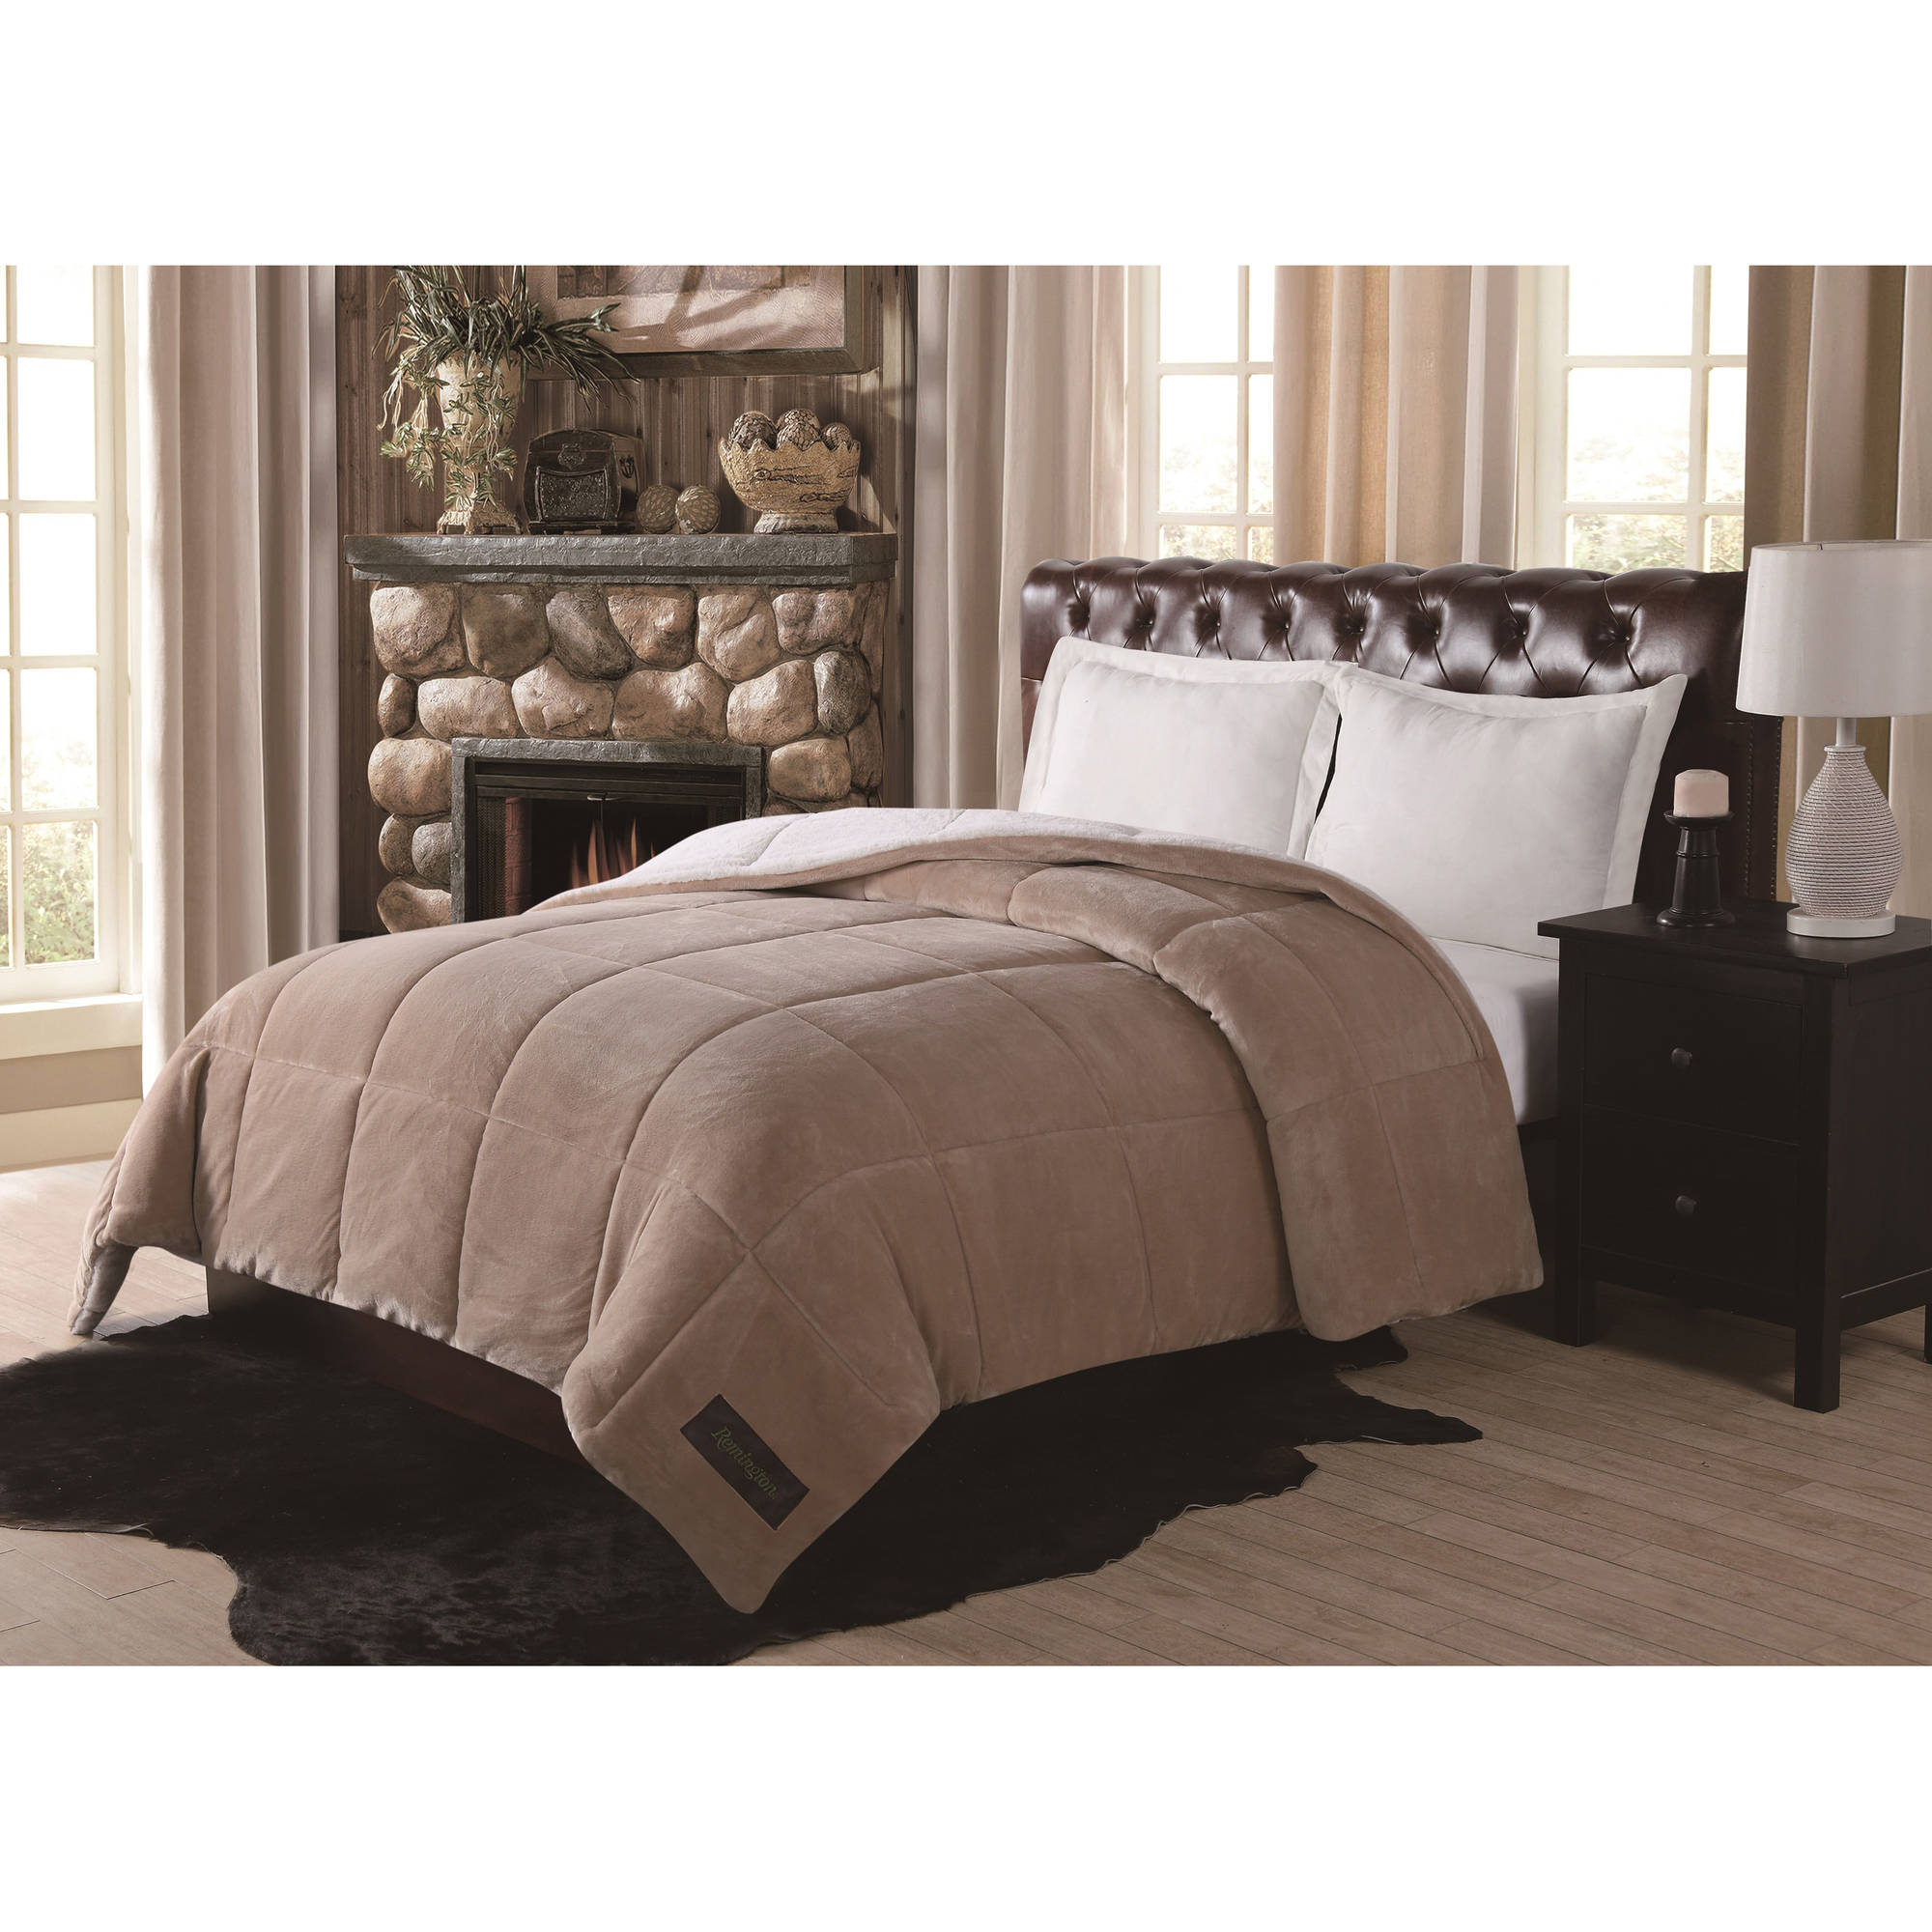 free oversized on bed sale florence solid bedding quilt set product overstock bath velvet today shipping